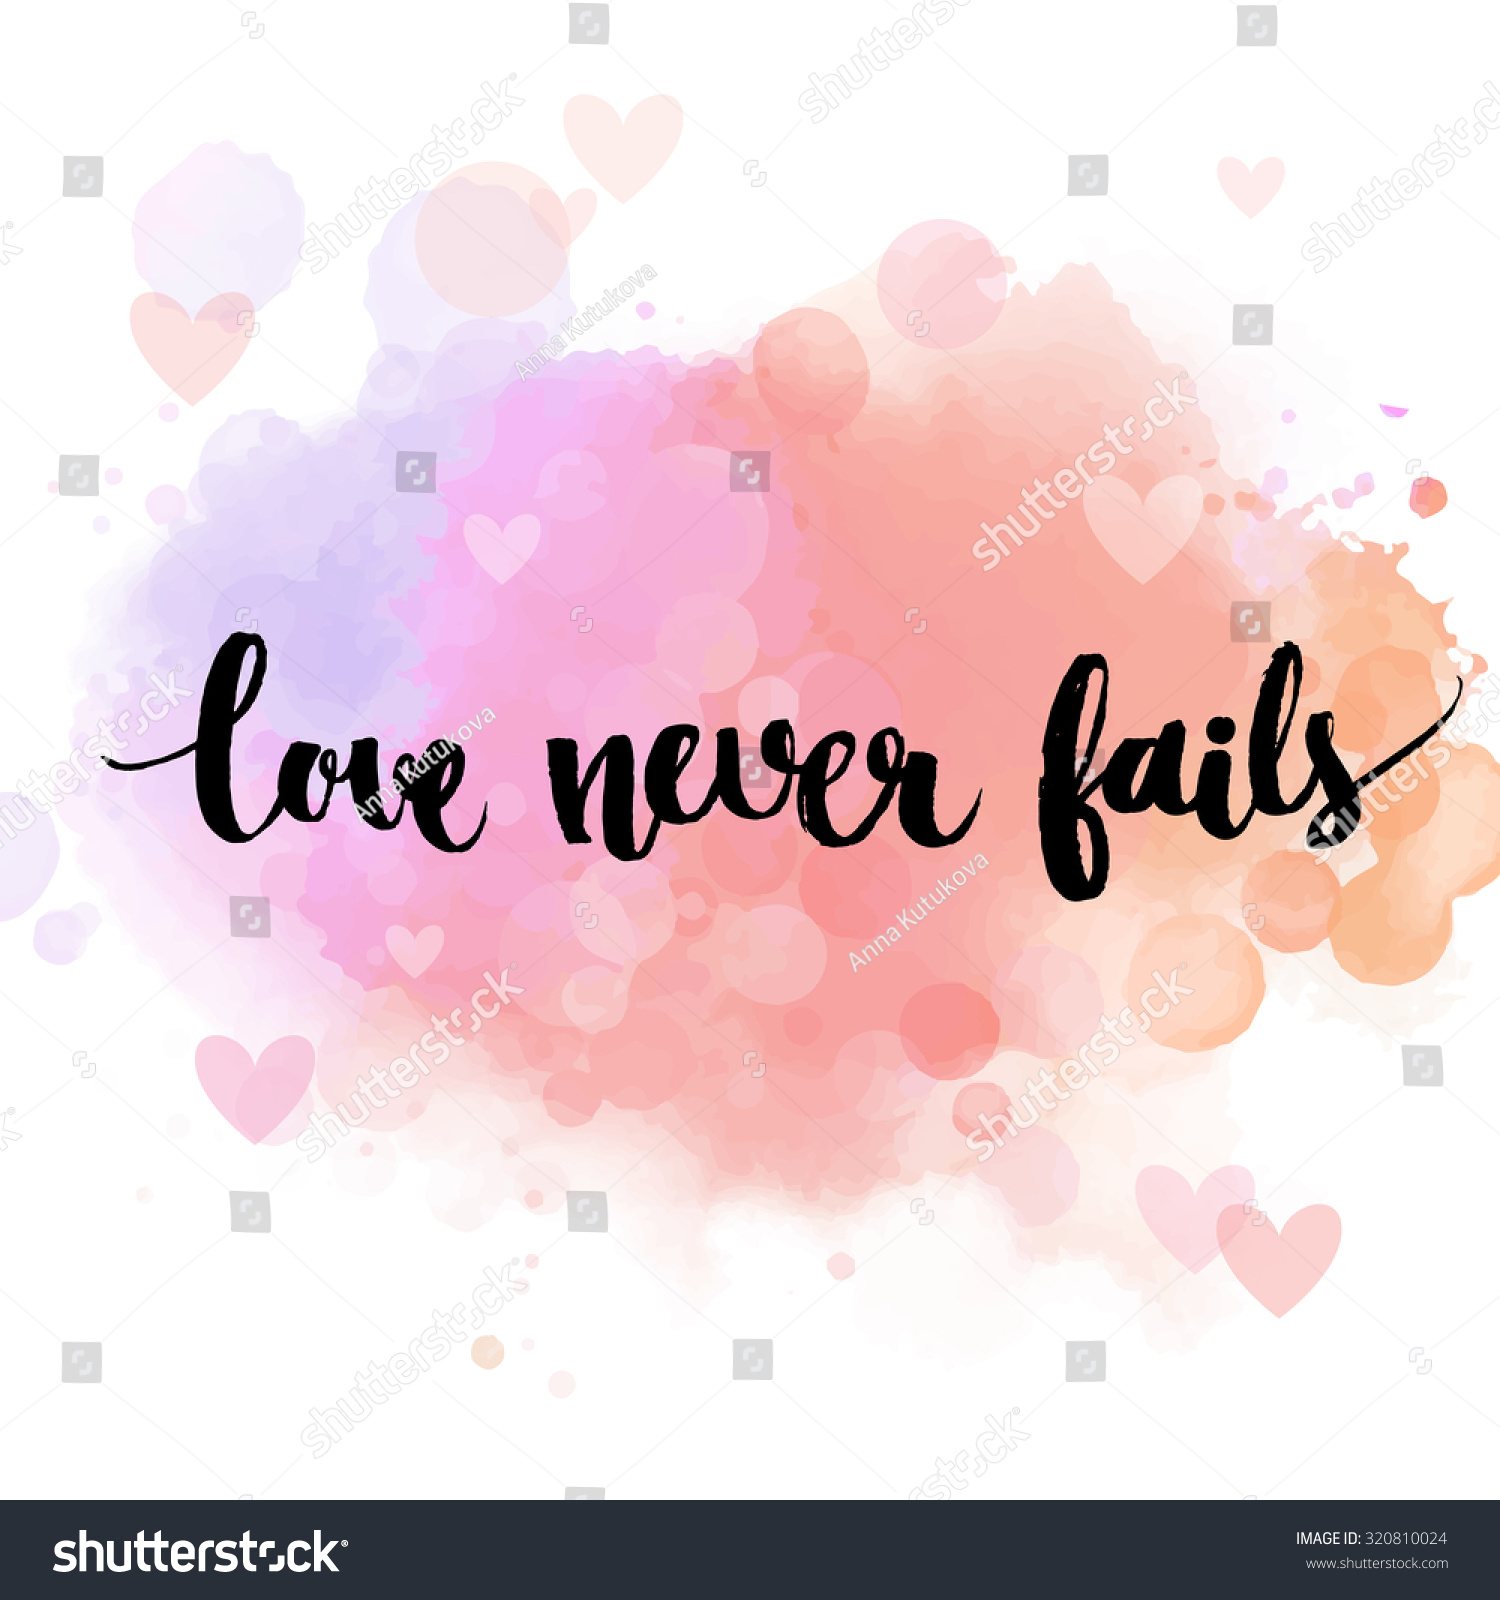 Love never fails black inspirational quote on pastel pink